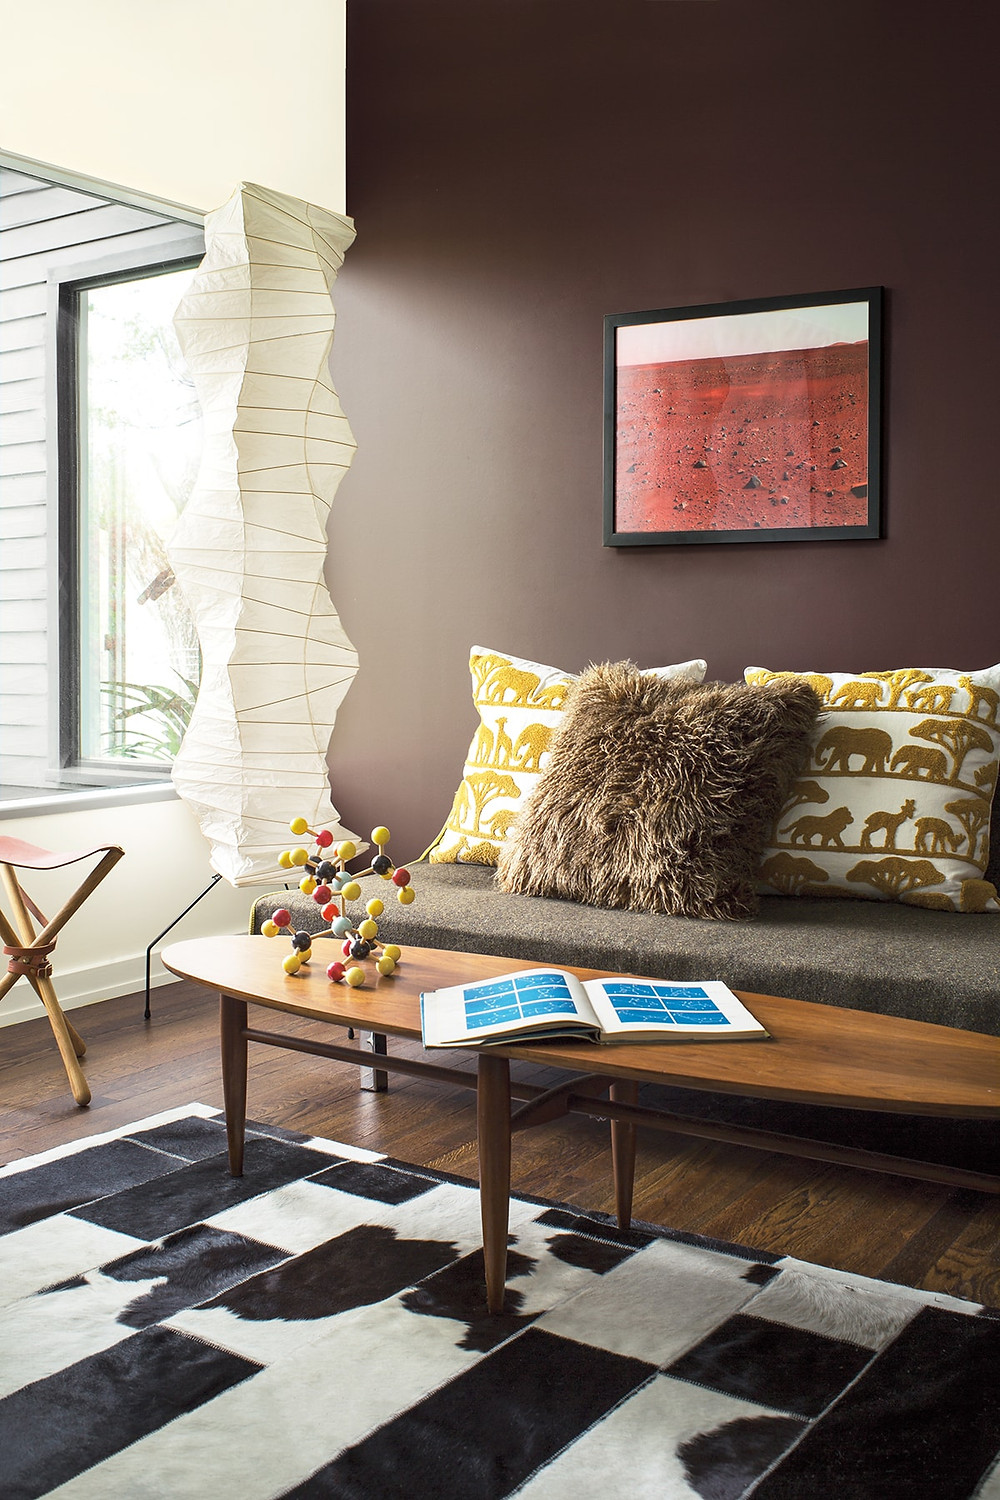 Mid century coffee table and wall art and rice paper lighting fixture, cowhide rug on the floor. Benjamin Moore has revealed Caliente AF-290 as its highly anticipated Colour of the Year 2018. Unveiled alongside a corresponding palette consisting of 22 enlivening hues, this vibrant and charismatic shade of red is a bold yet soothing contemporary colour that oozes confidence.